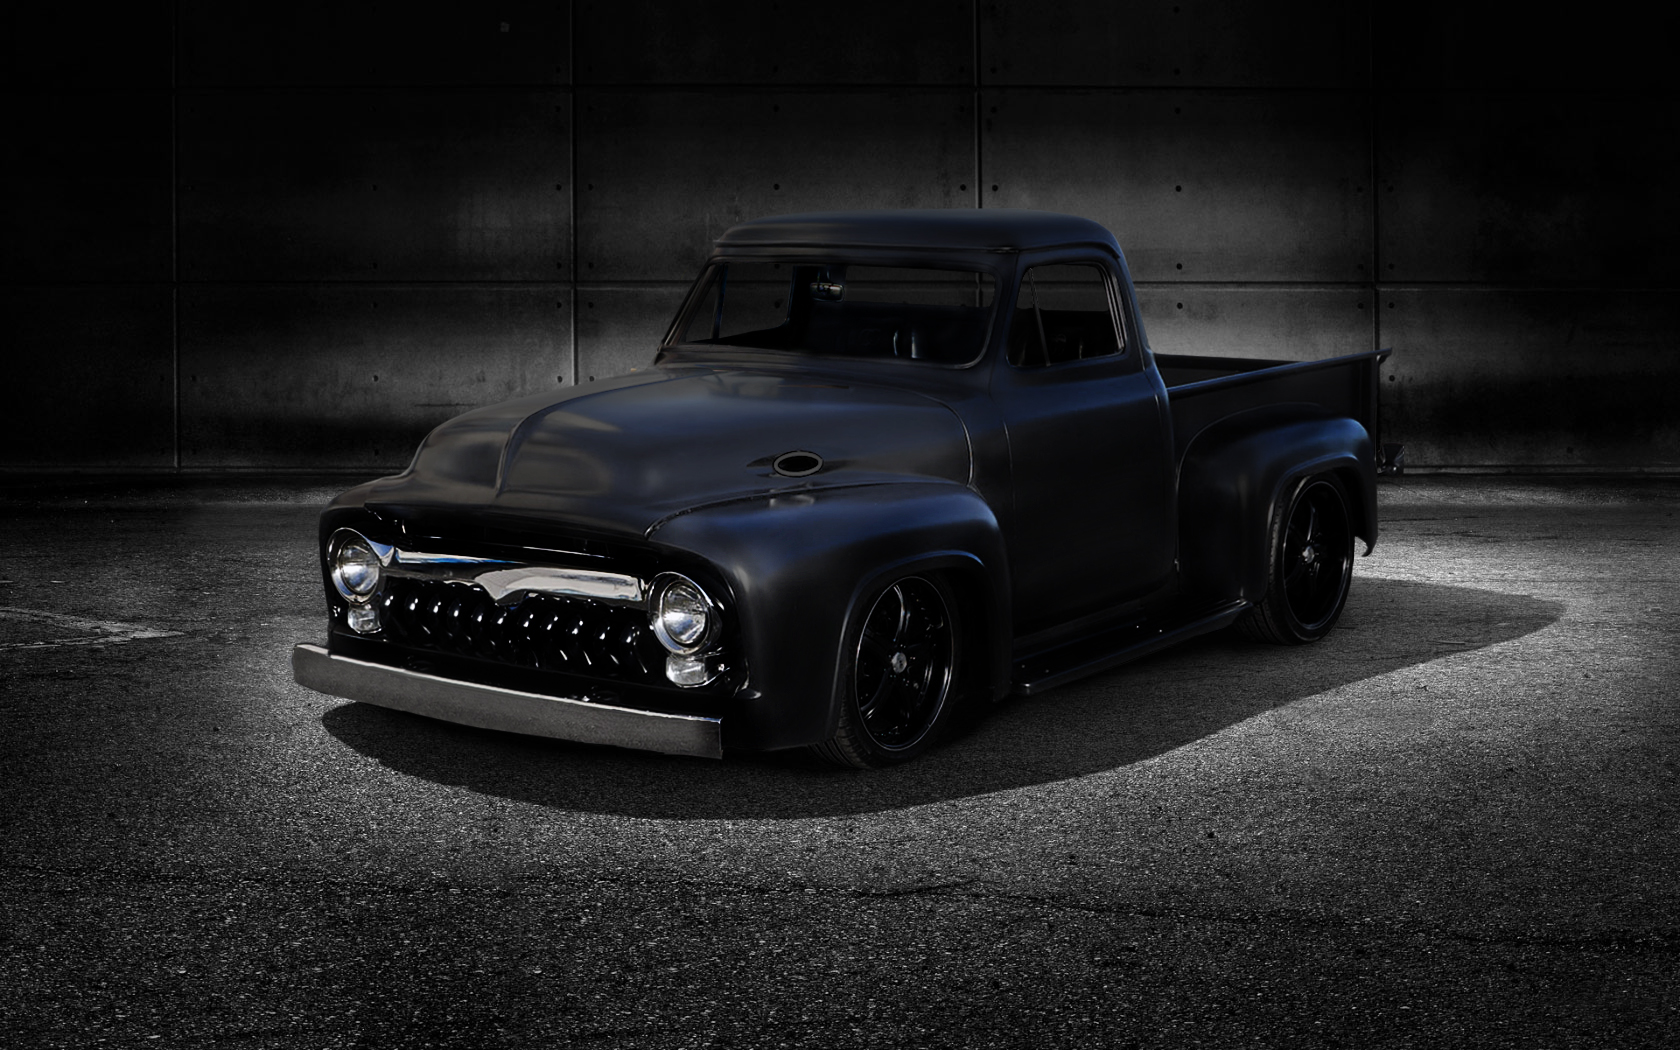 Classic Ford Truck Wallpaper Desktop Wallpaper with 1680x1050 1680x1050